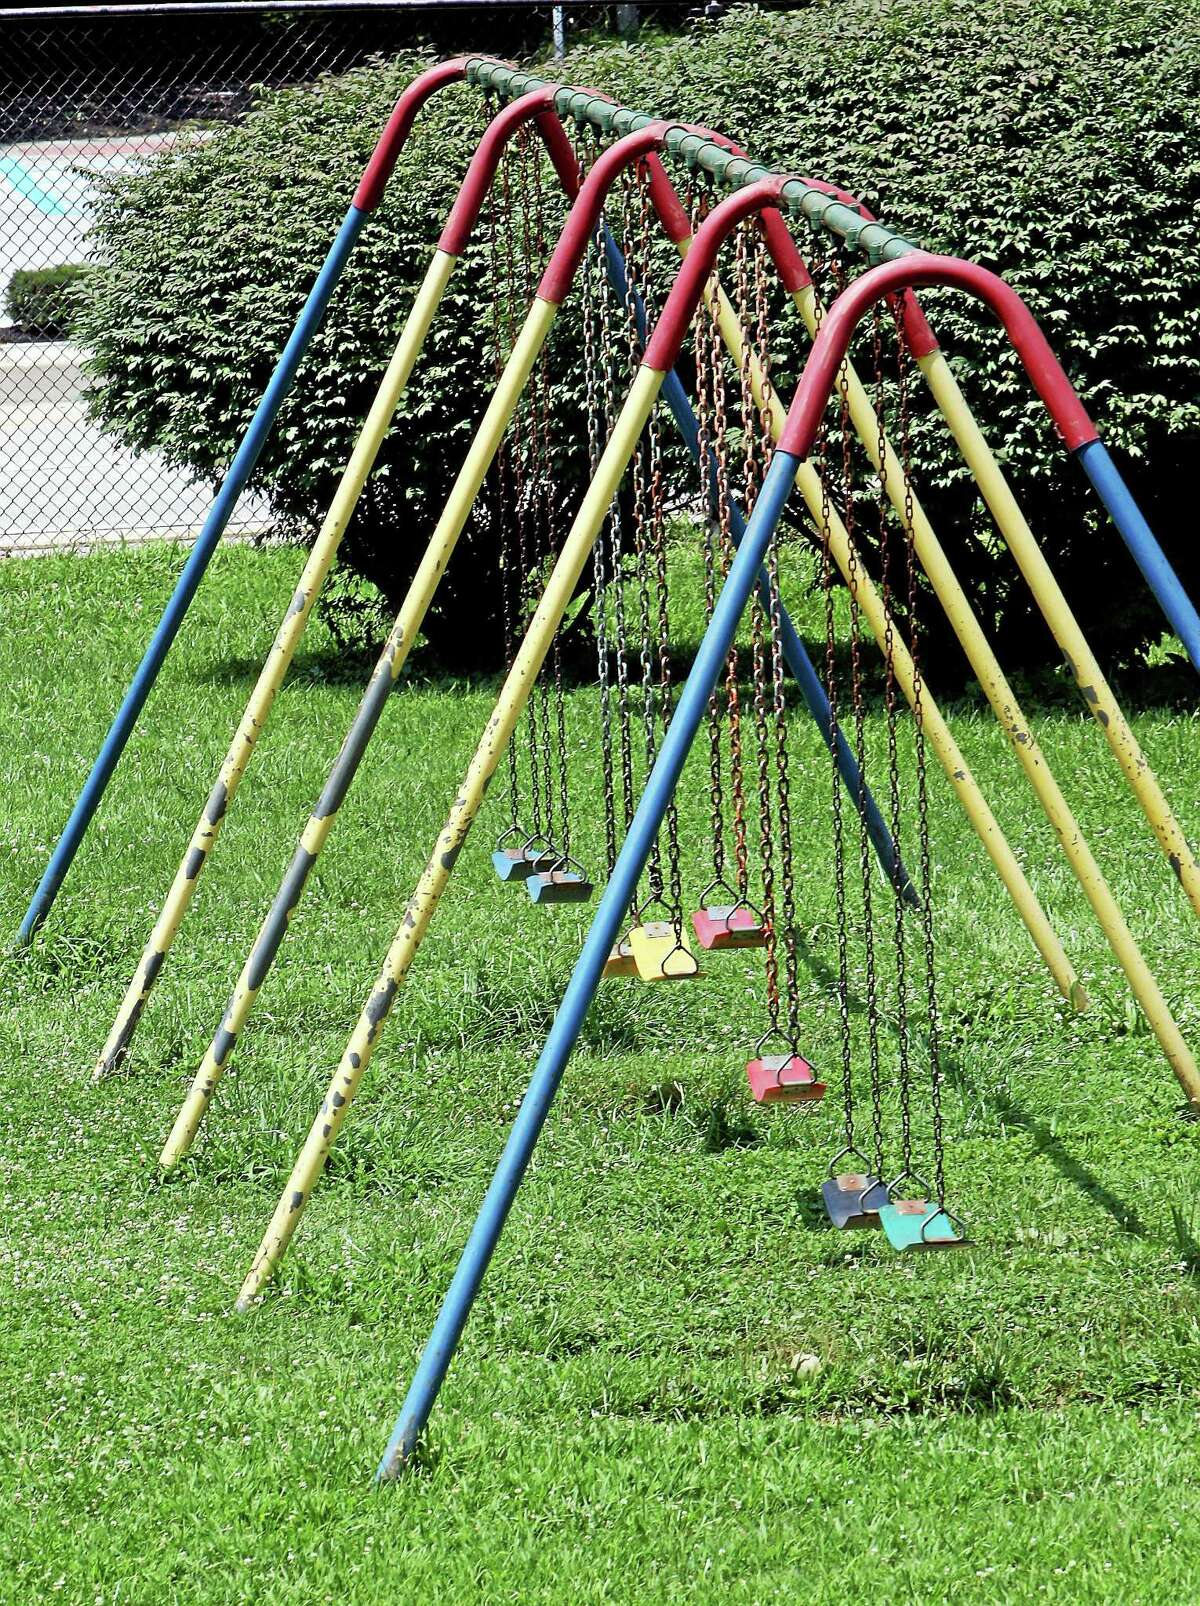 Digital First Media file photo A swing set sits idle in West Chester, Pa., in this 2013 file photo.